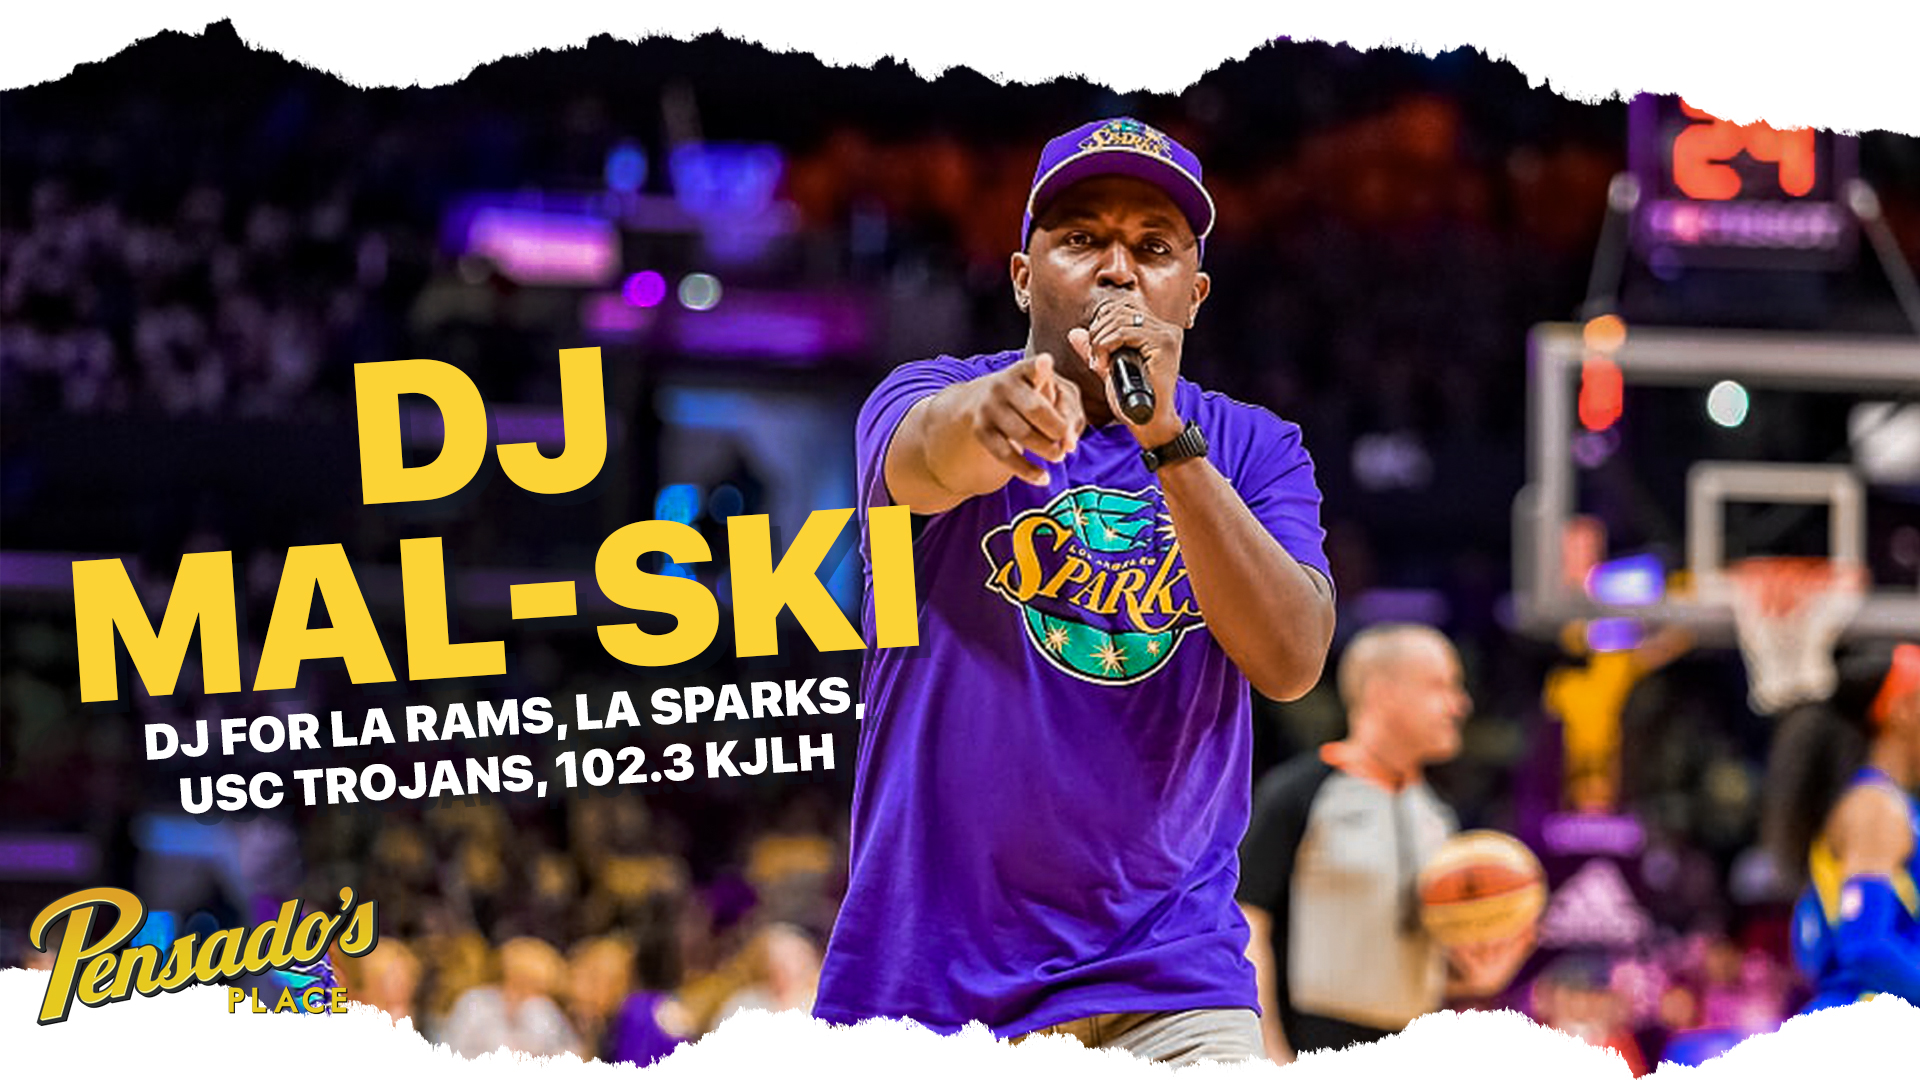 Official DJ for the LA Rams (NFL), DJ MaL-Ski